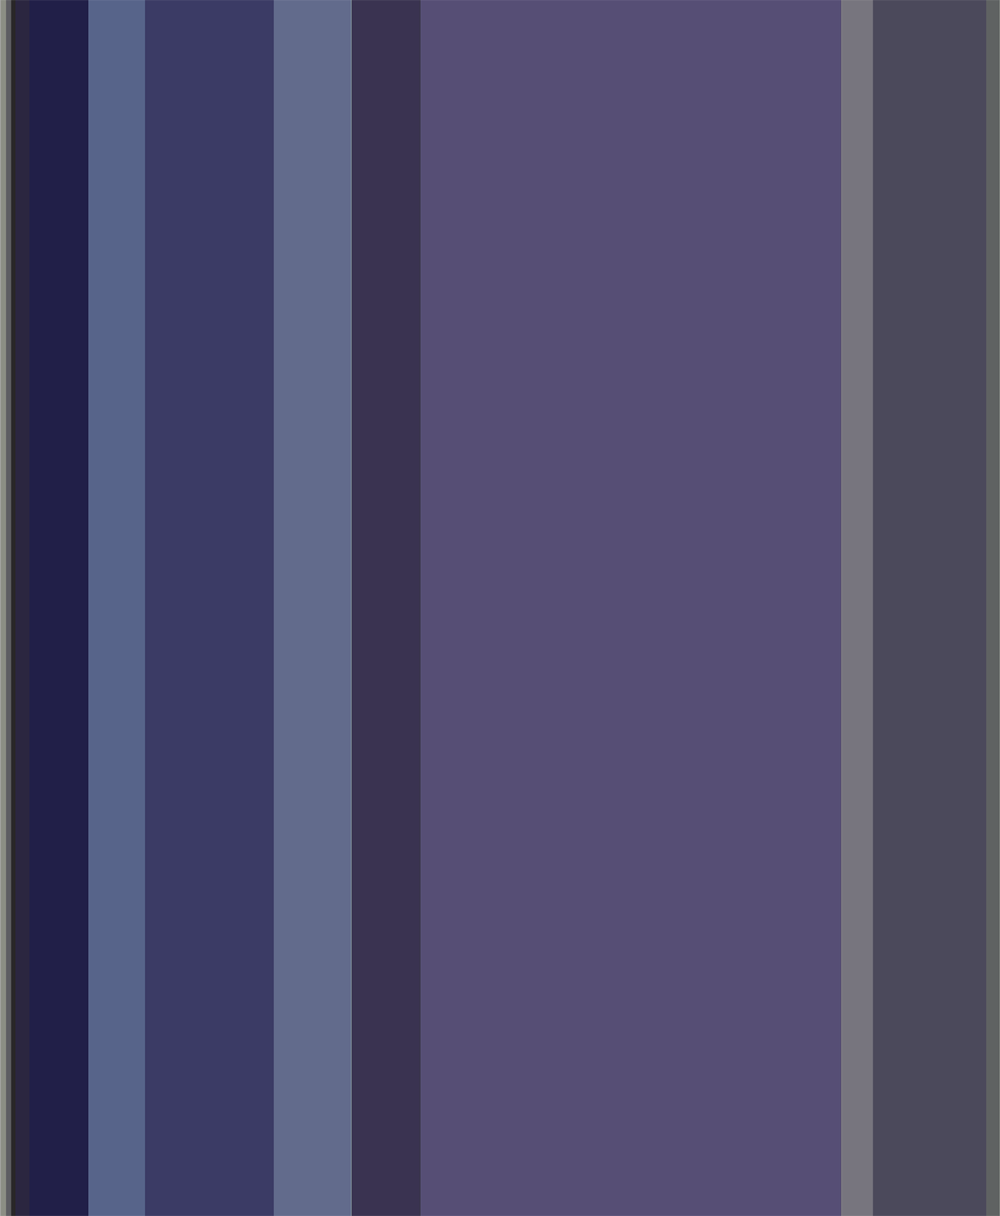 colours-20180830-sky.png